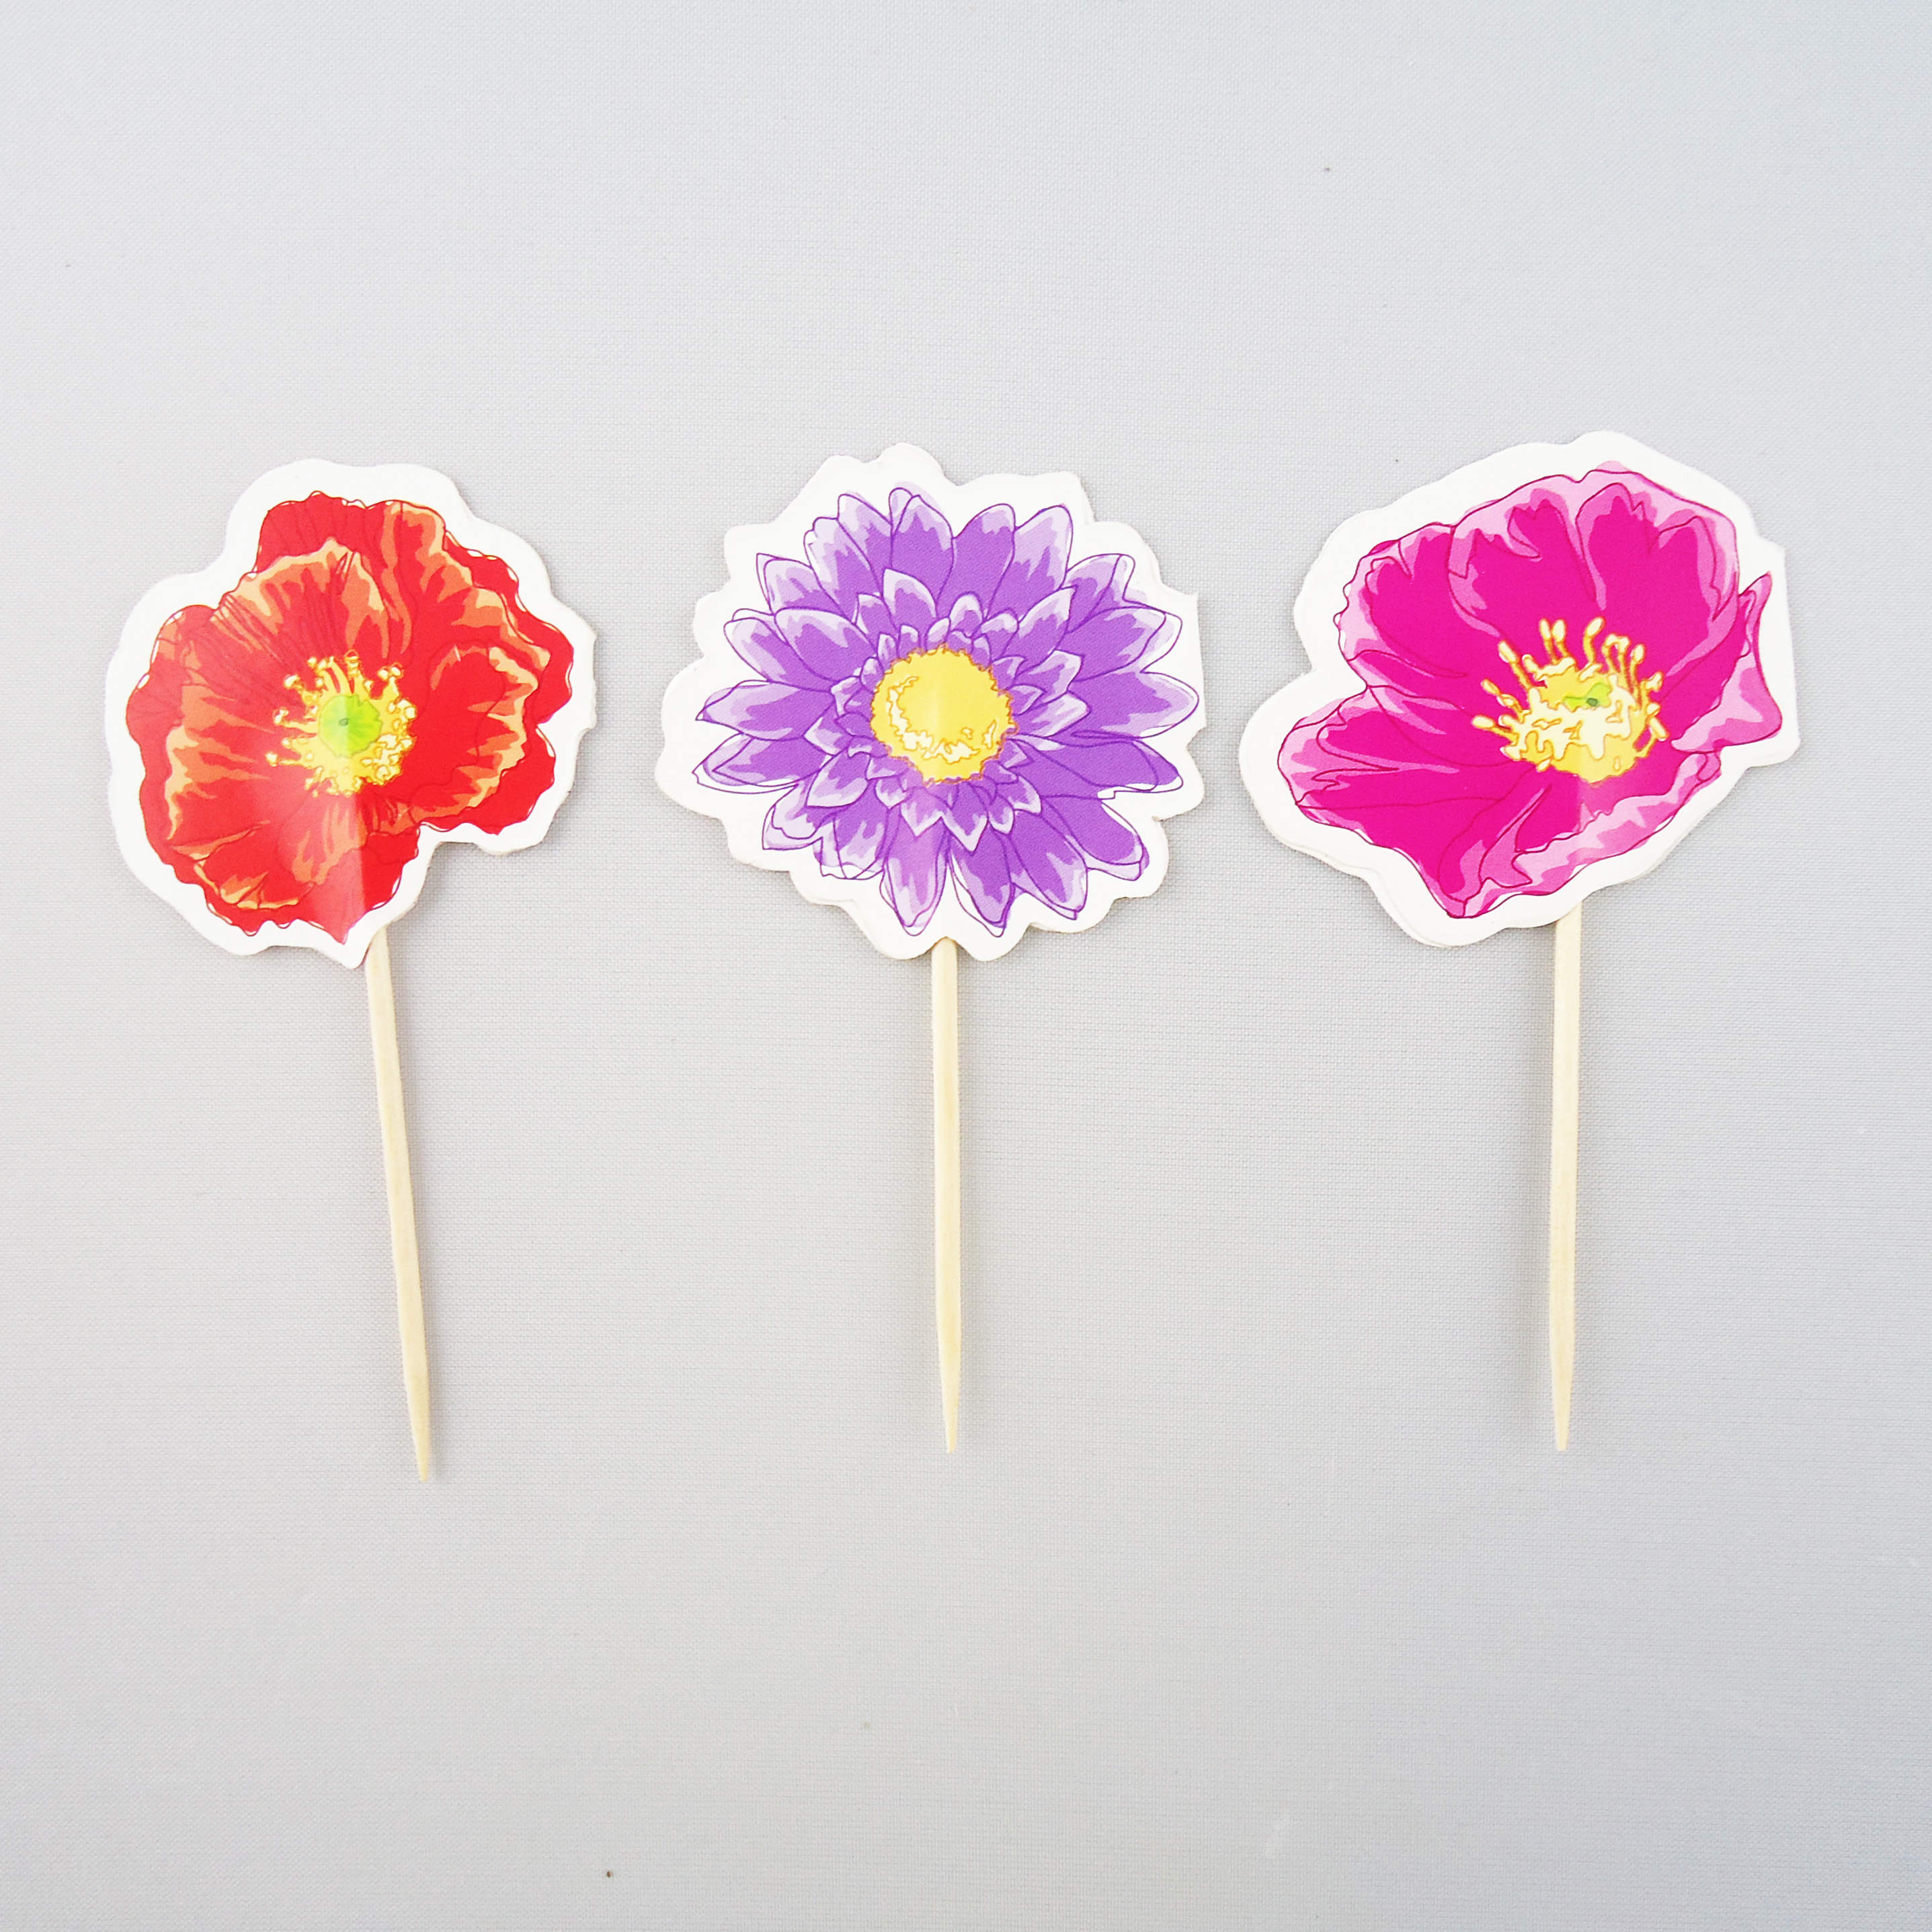 Toothpick with Flower Decorative